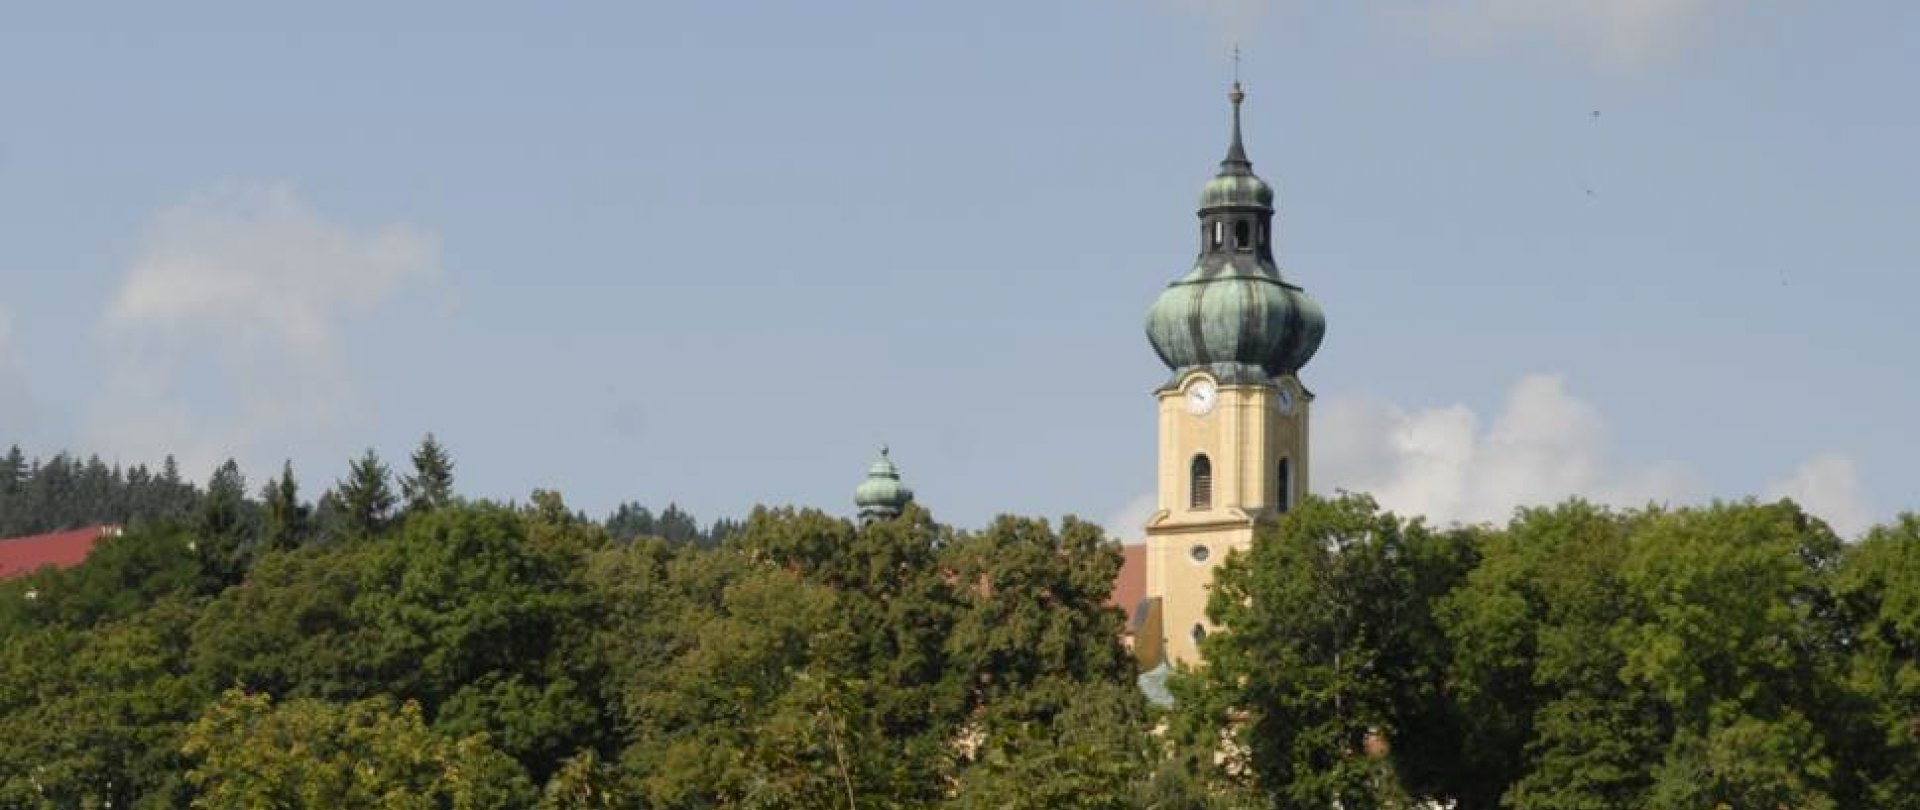 We invite you for a vacation to Polanica-Zdrój